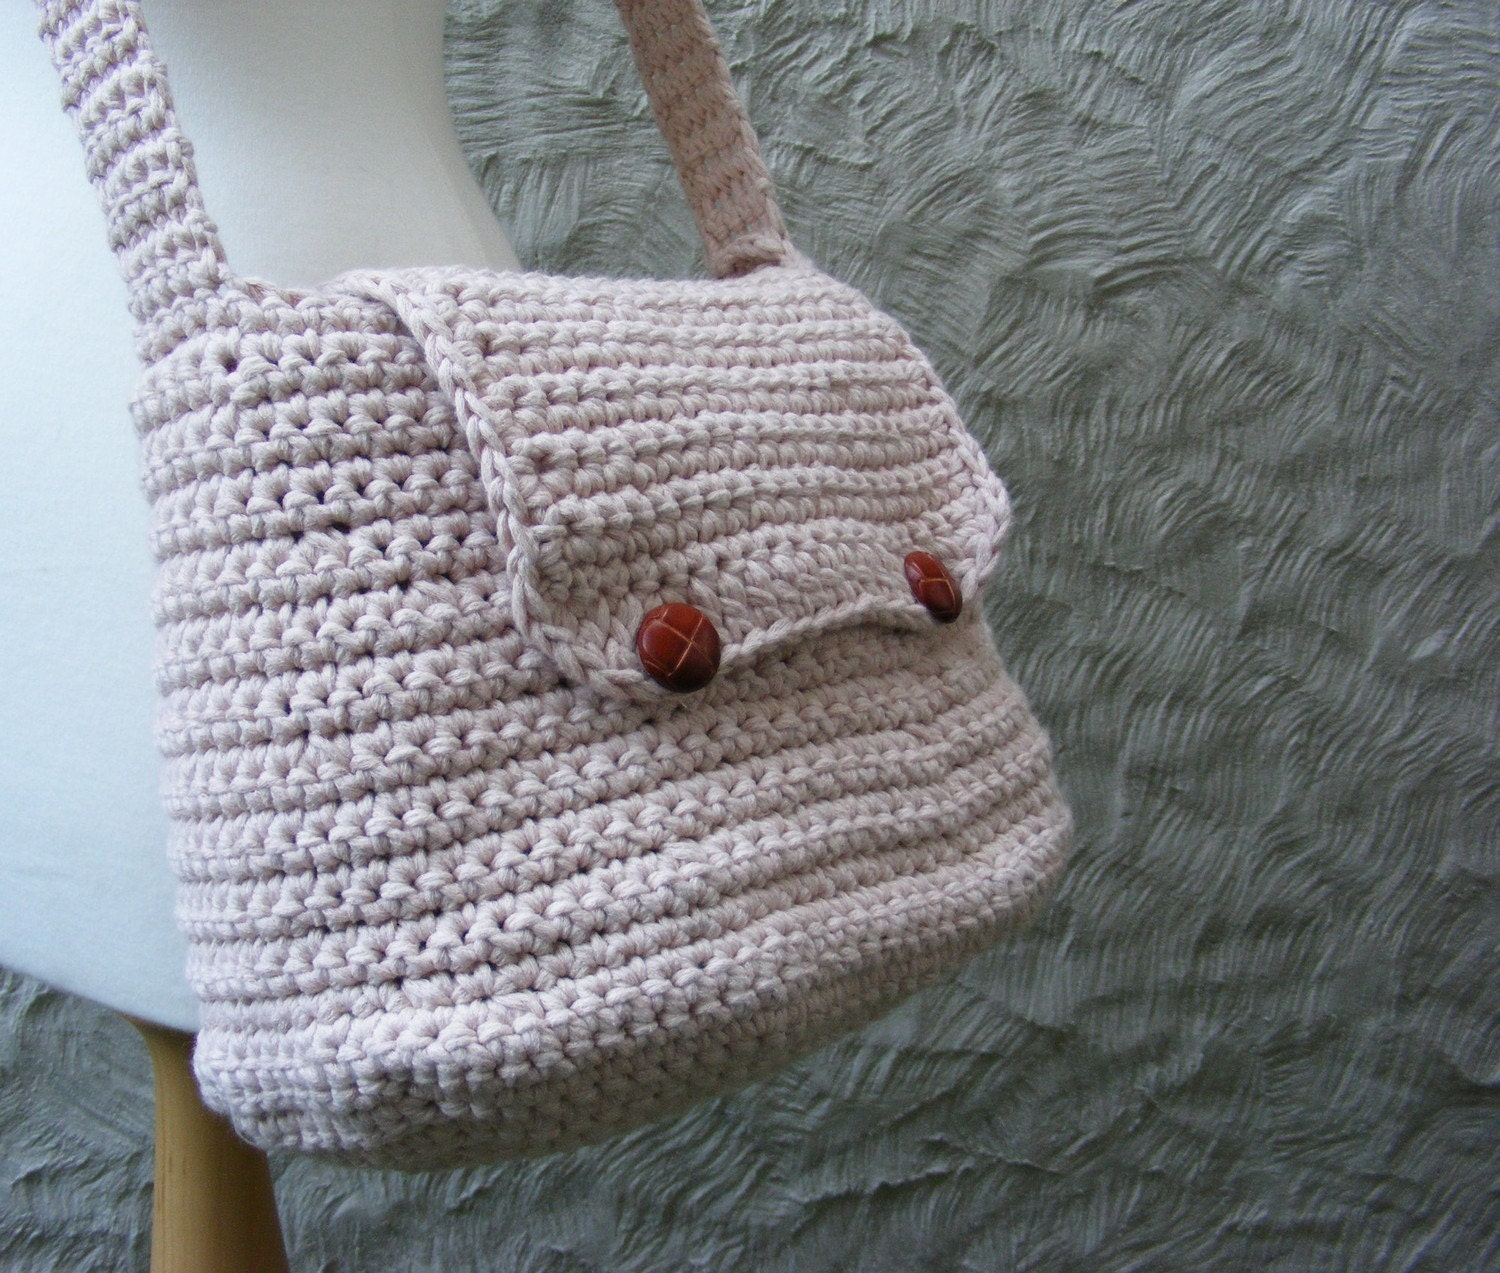 Free Patterns For Purses And Bags : purse patterns free crochet bag and purse patterns little eyelash bag ...